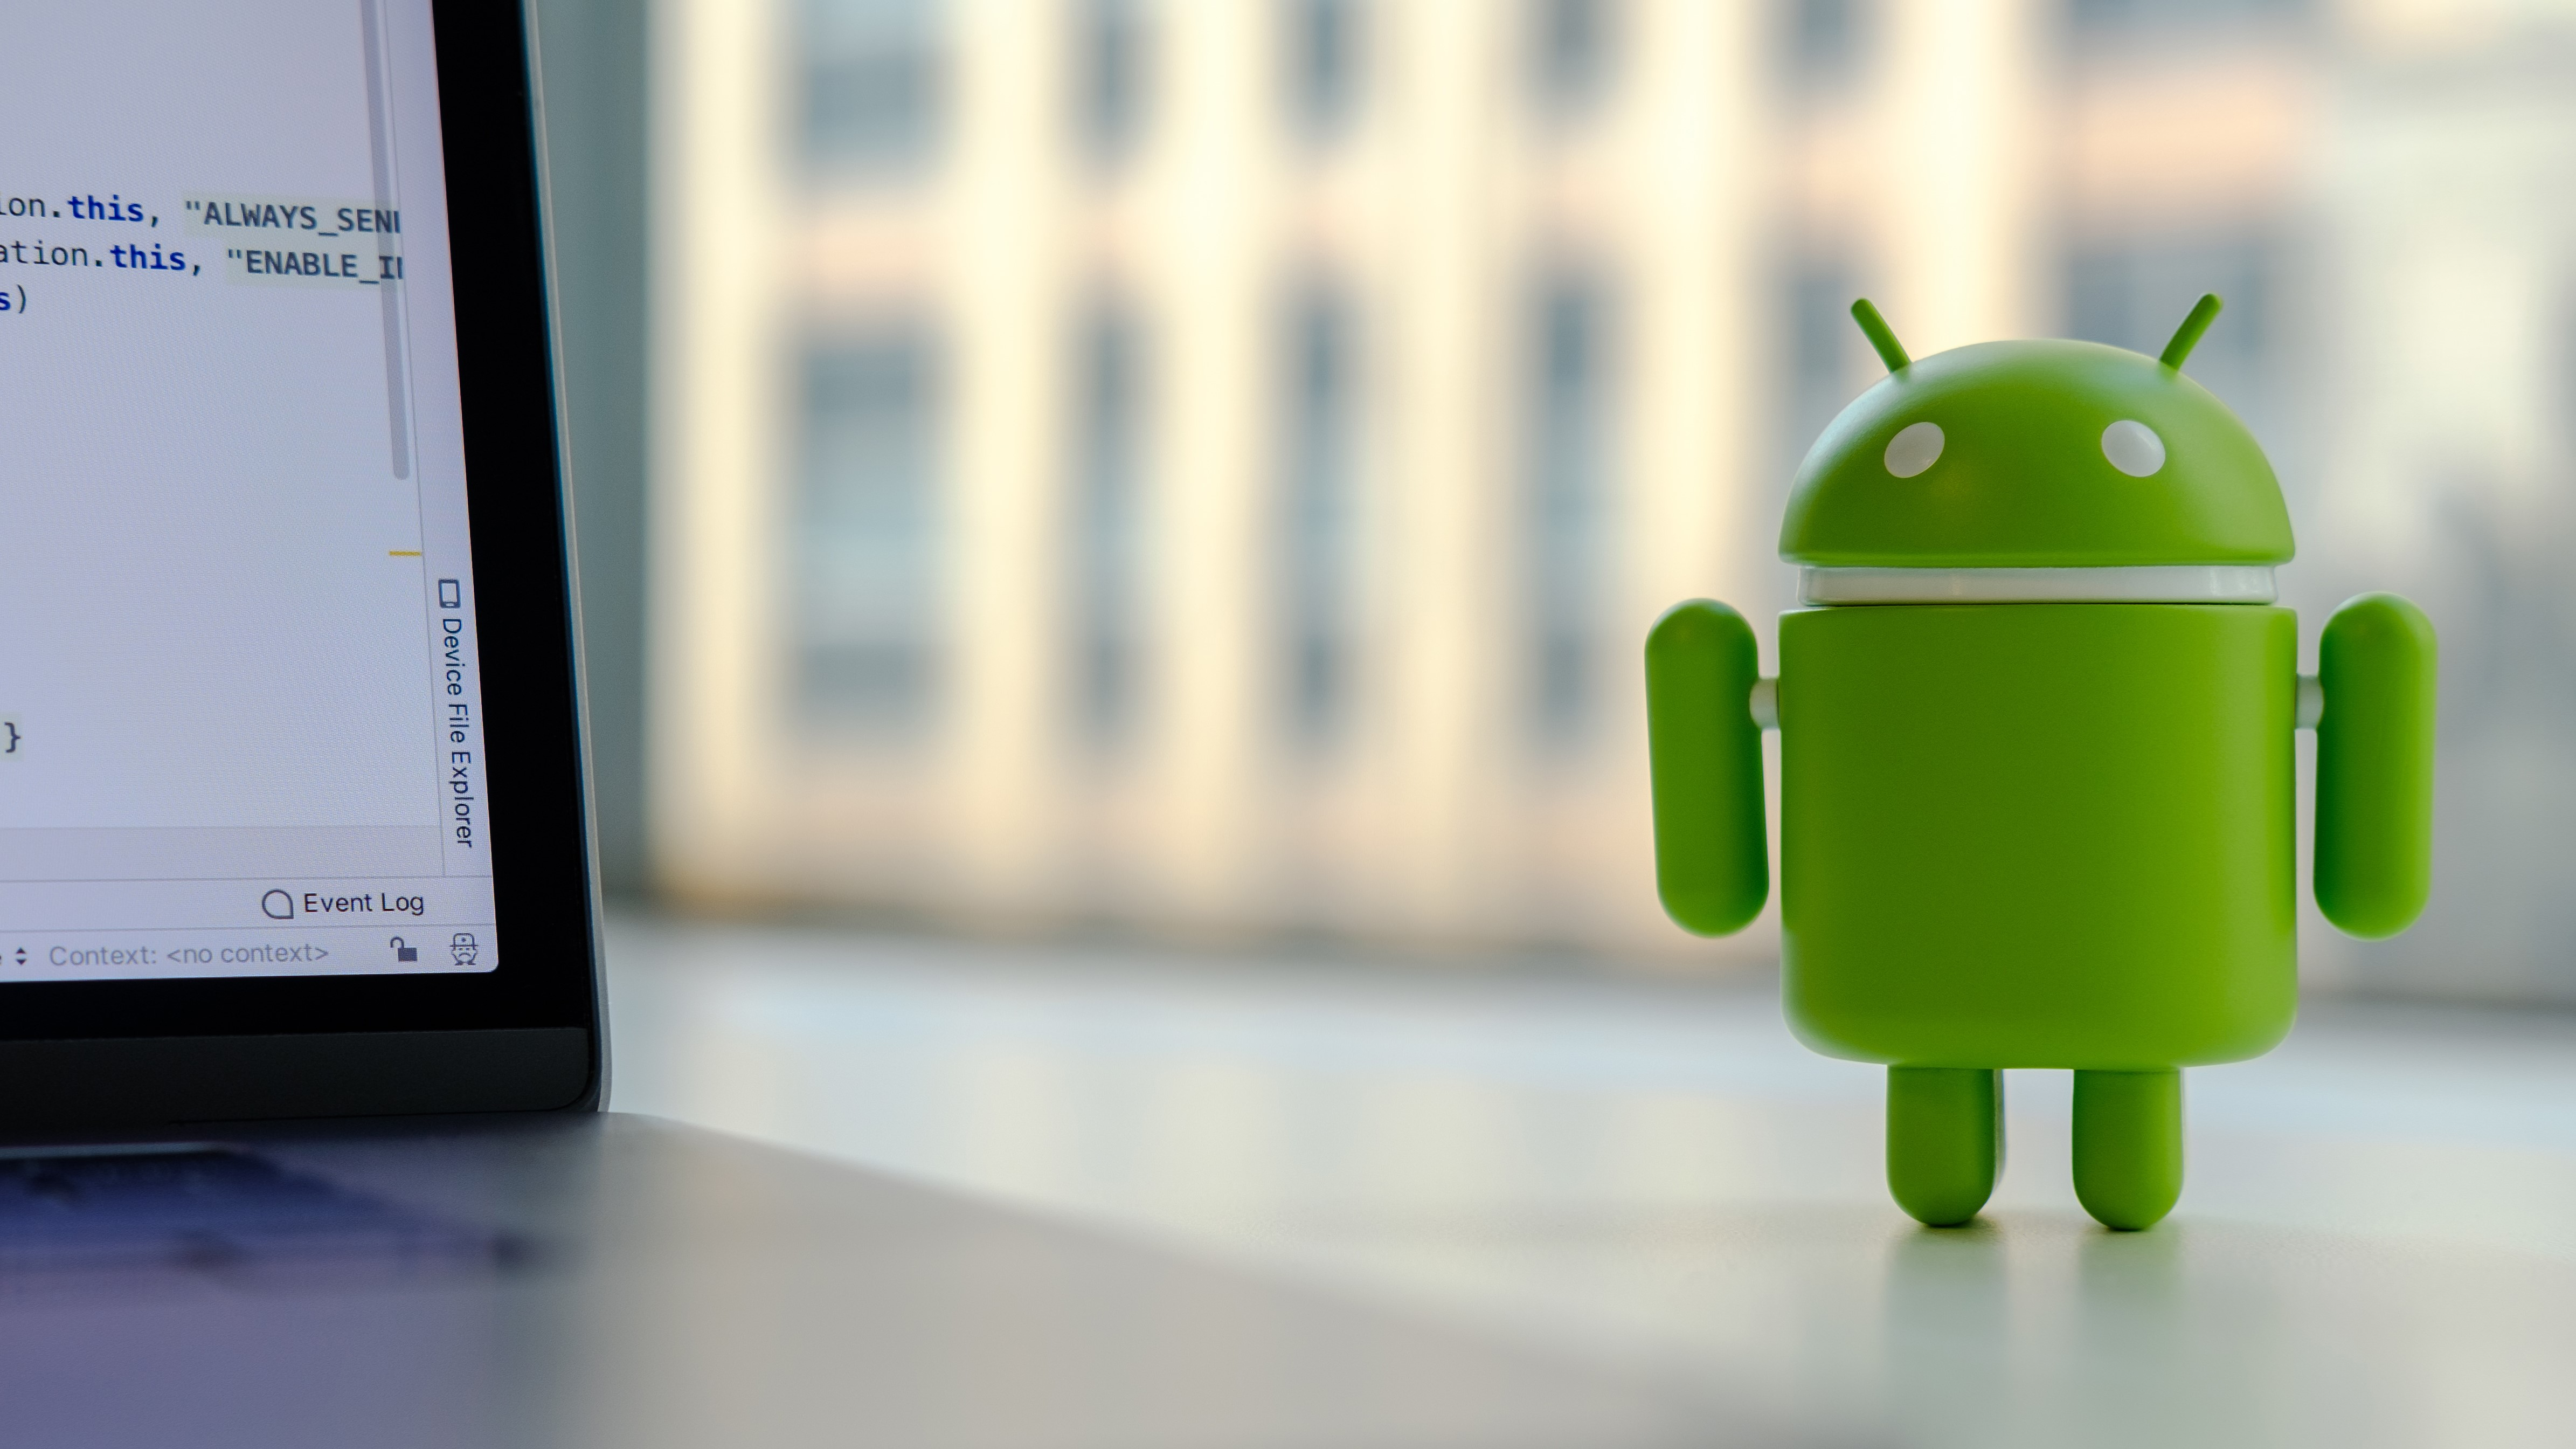 Google Play Protect performs miserably in Android protection tests